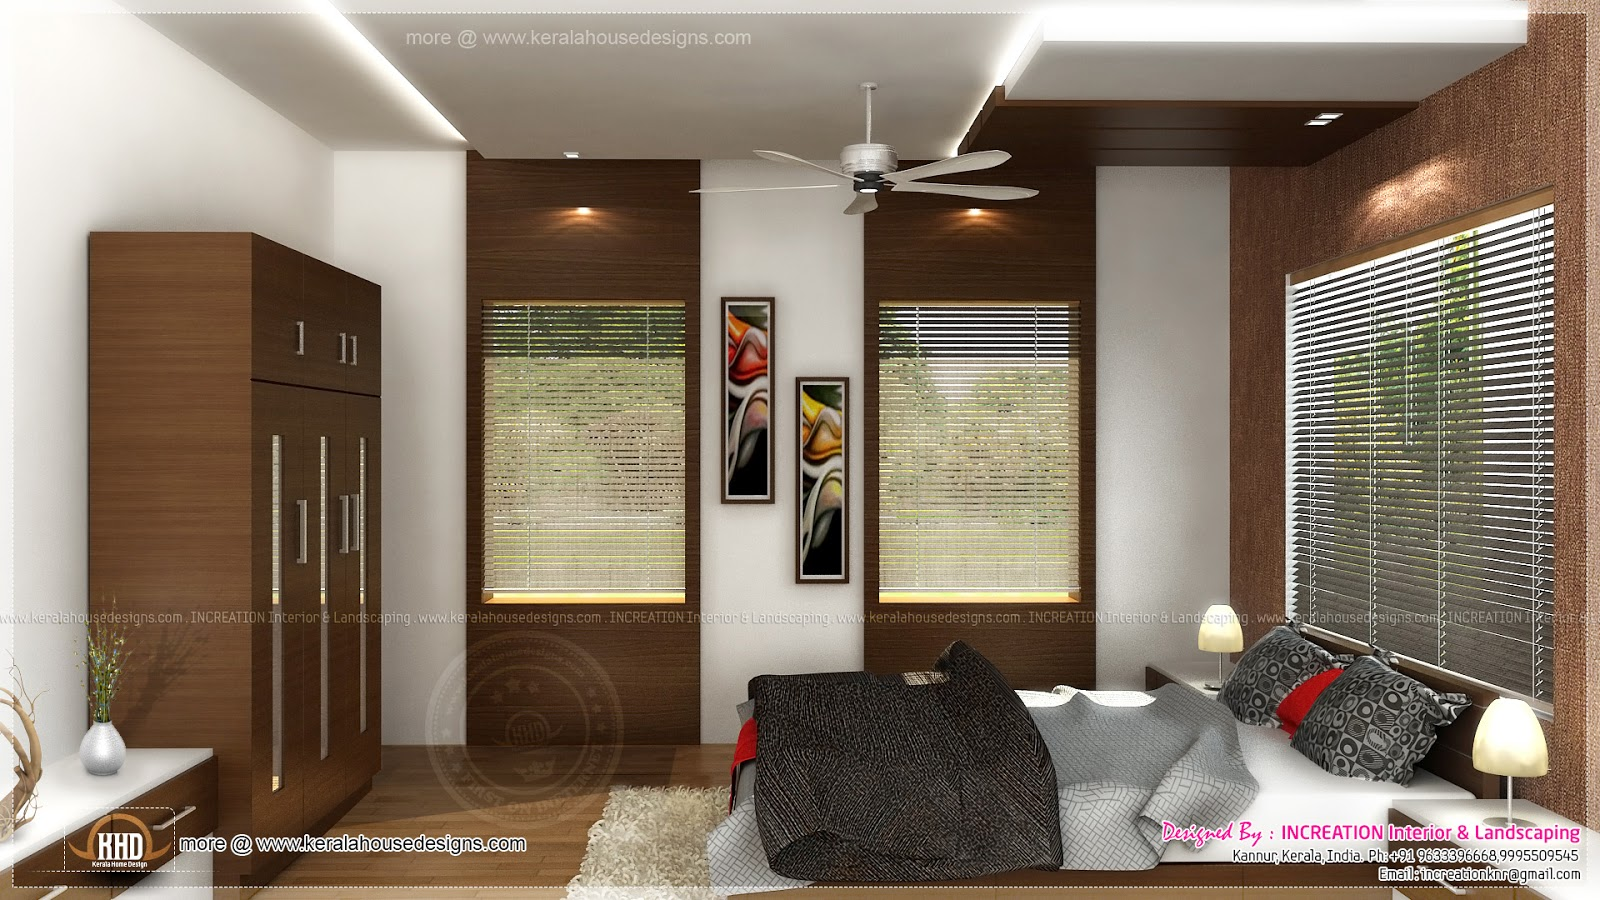 Interior designs from kannur kerala kerala home design and floor plans - Home designs interior ...